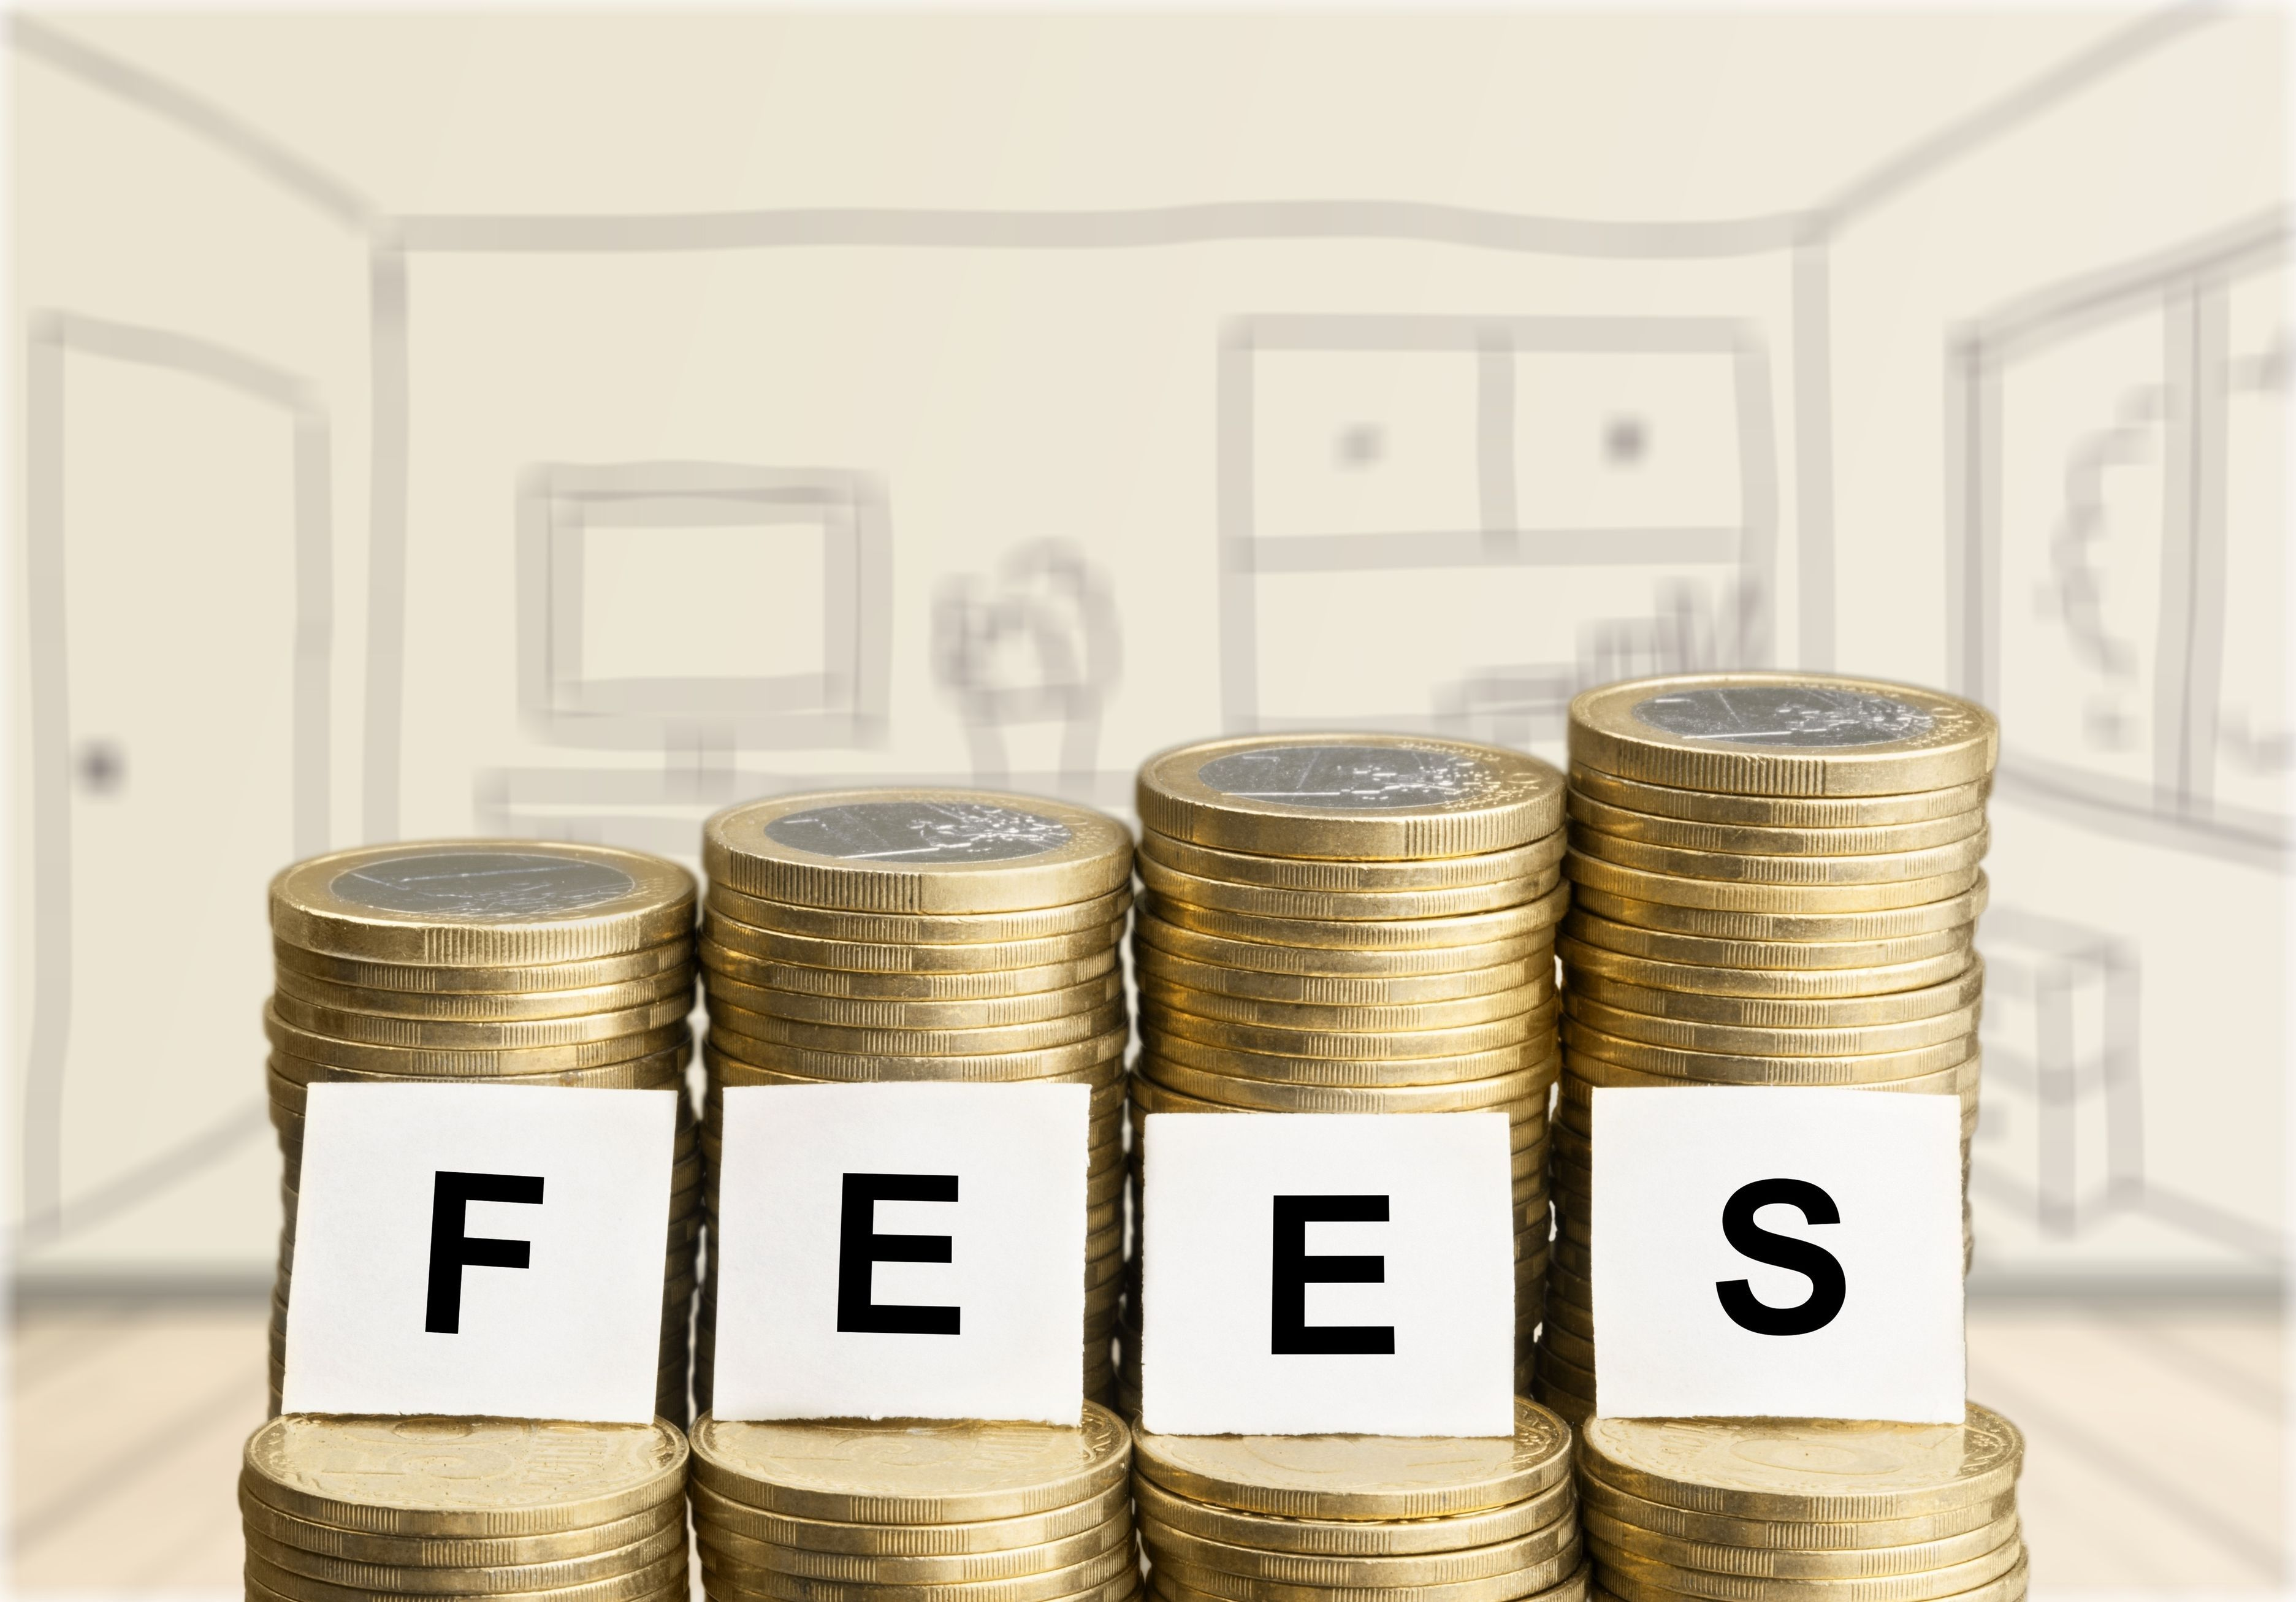 Kraken Alters Course, Reduces Proposed Withdrawal Fees | Digital